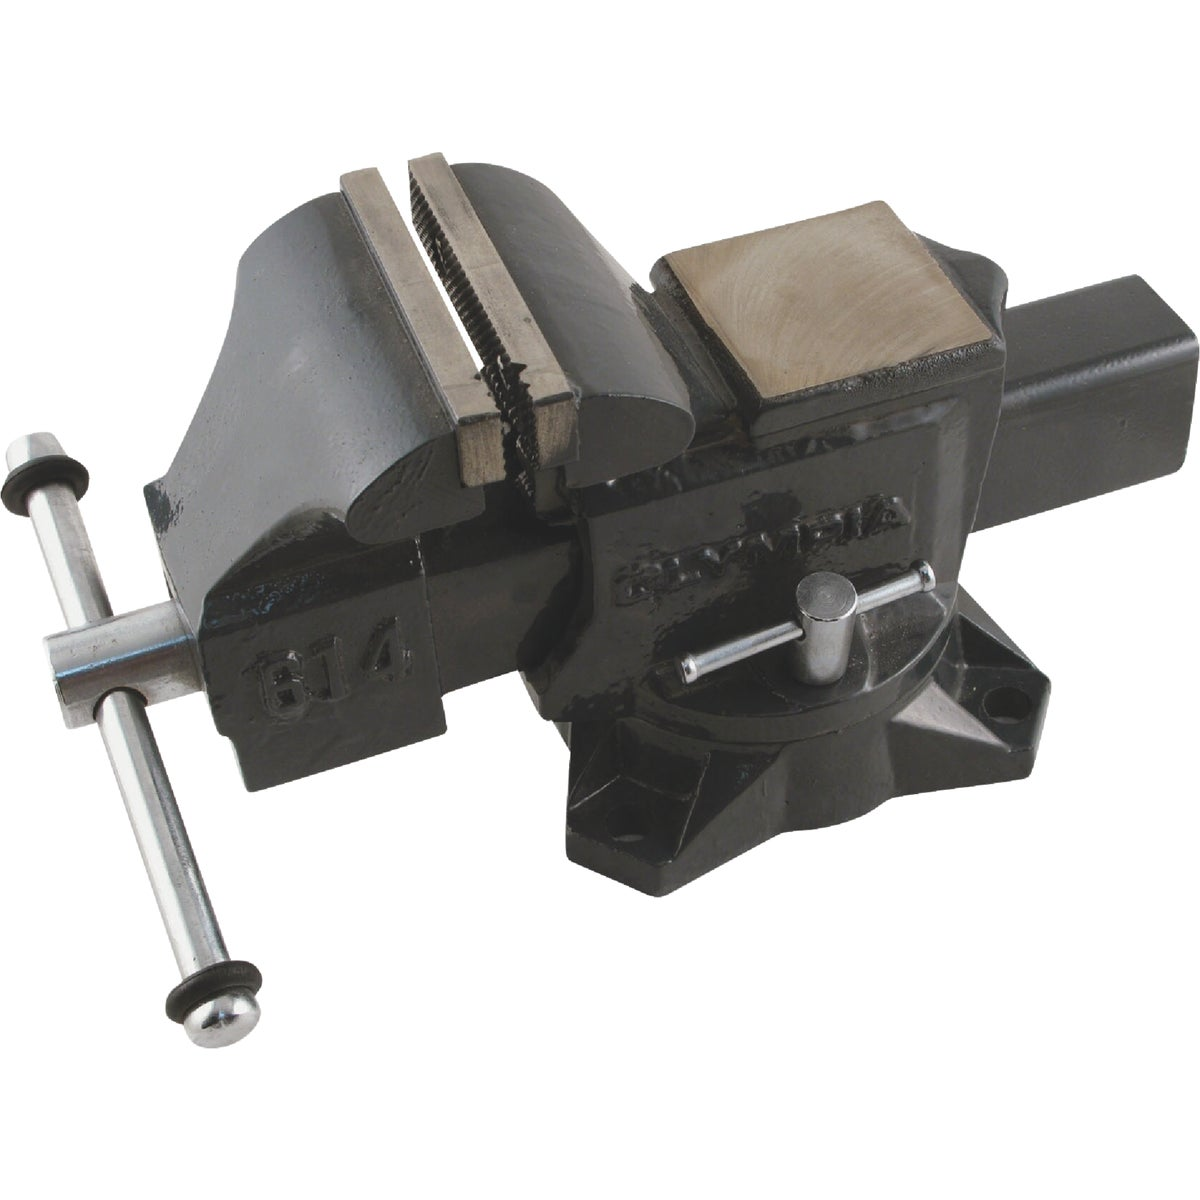 "4"" HD MECHANICS VISE"